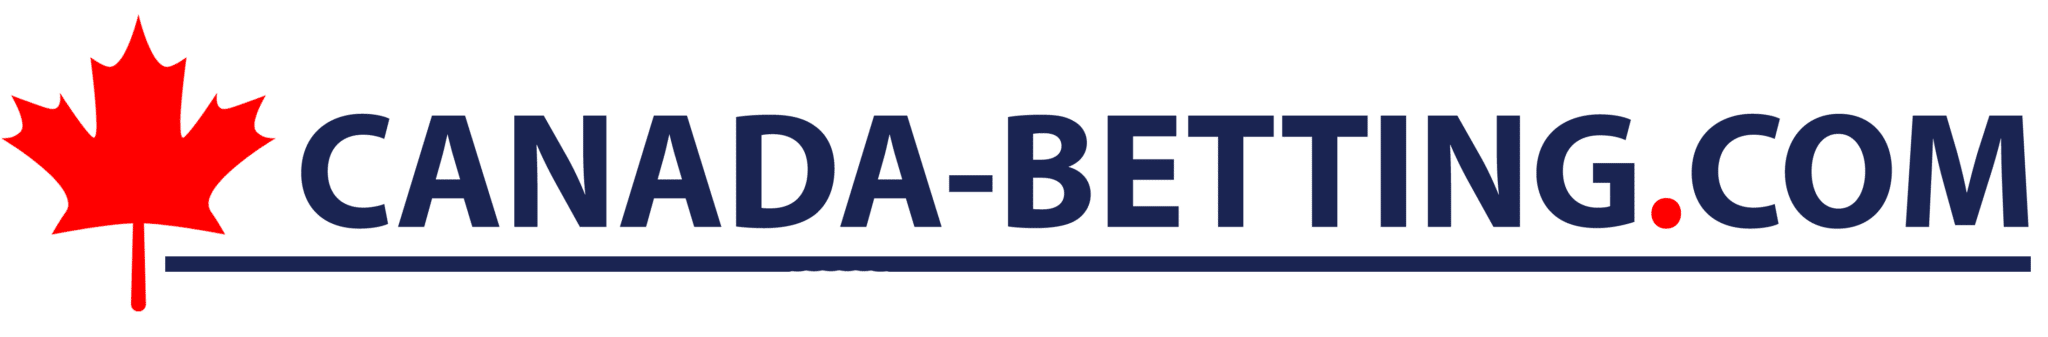 cropped-canada-betting-logo.png